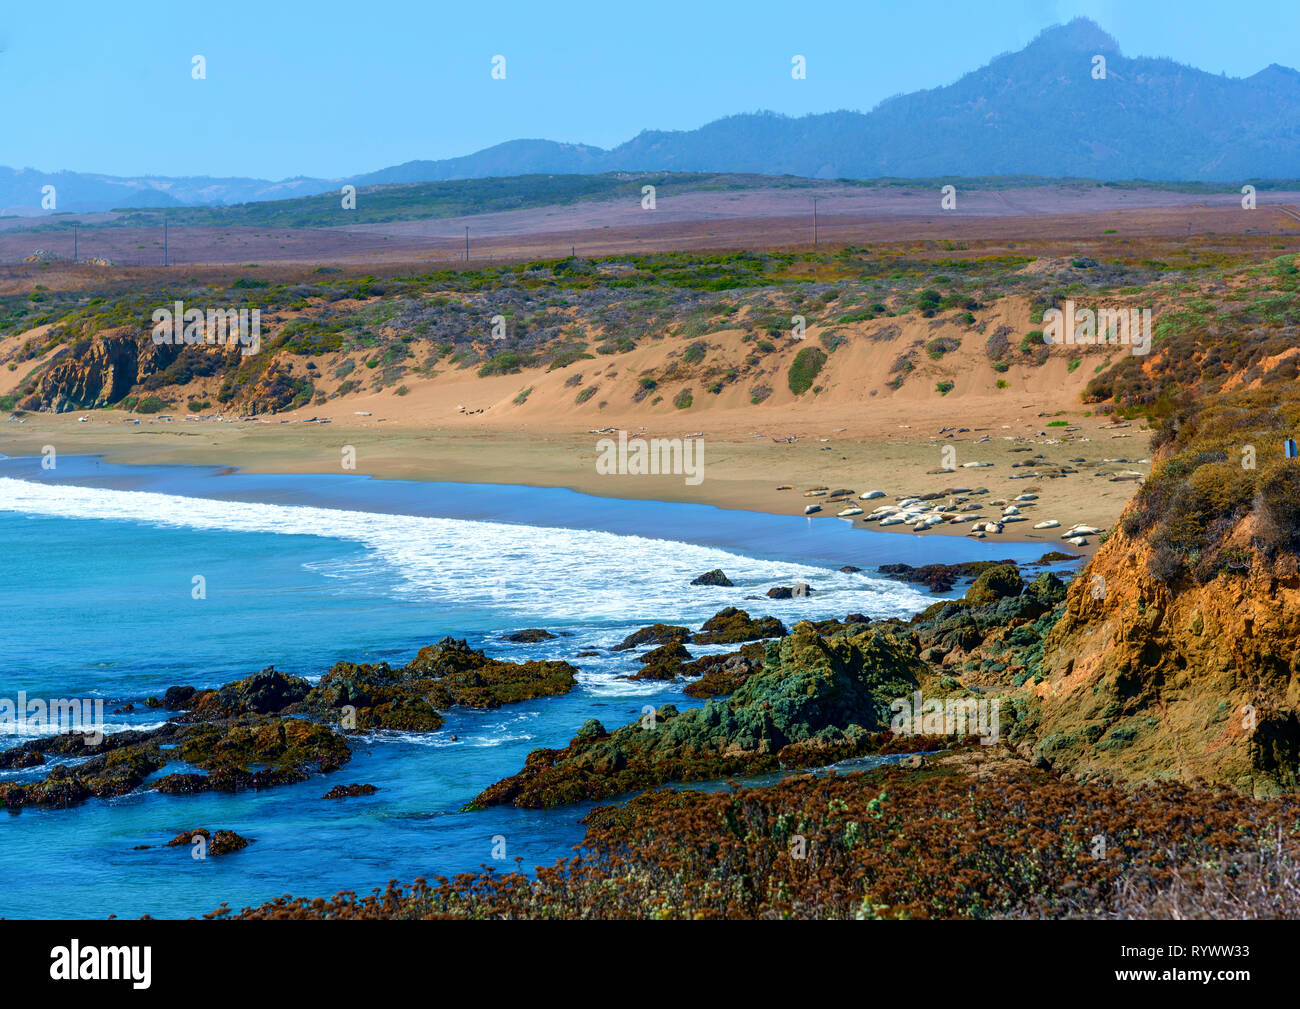 White waves rolling onto shore below, sandy beach and rocky coastline under bright blue sky. Stock Photo